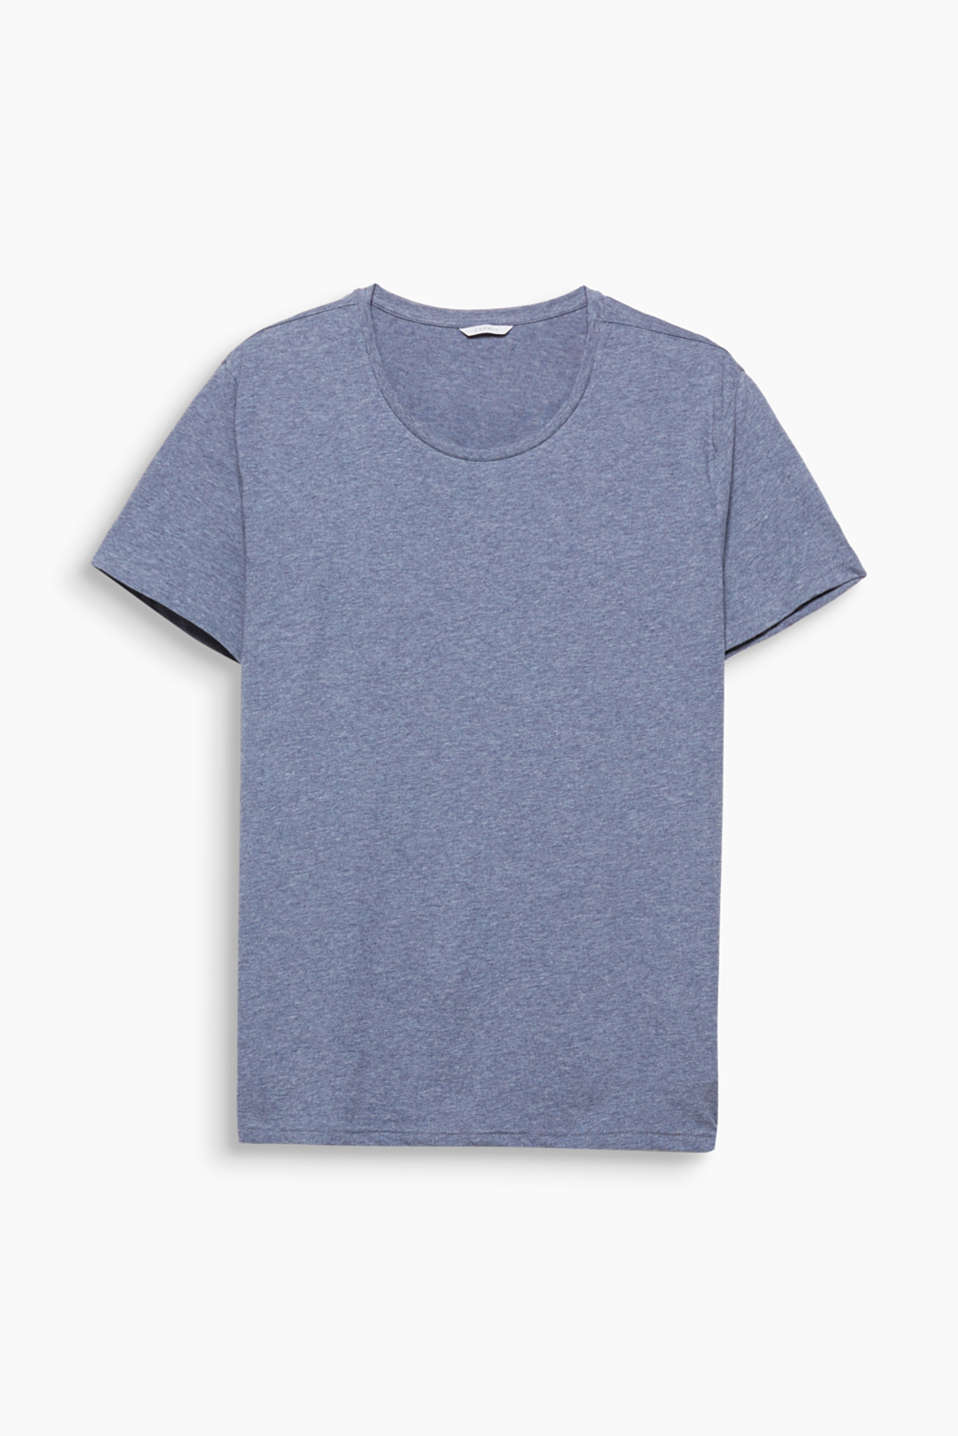 This melange T-shirt with a round neckline is a great basic that should be in every wardrobe.